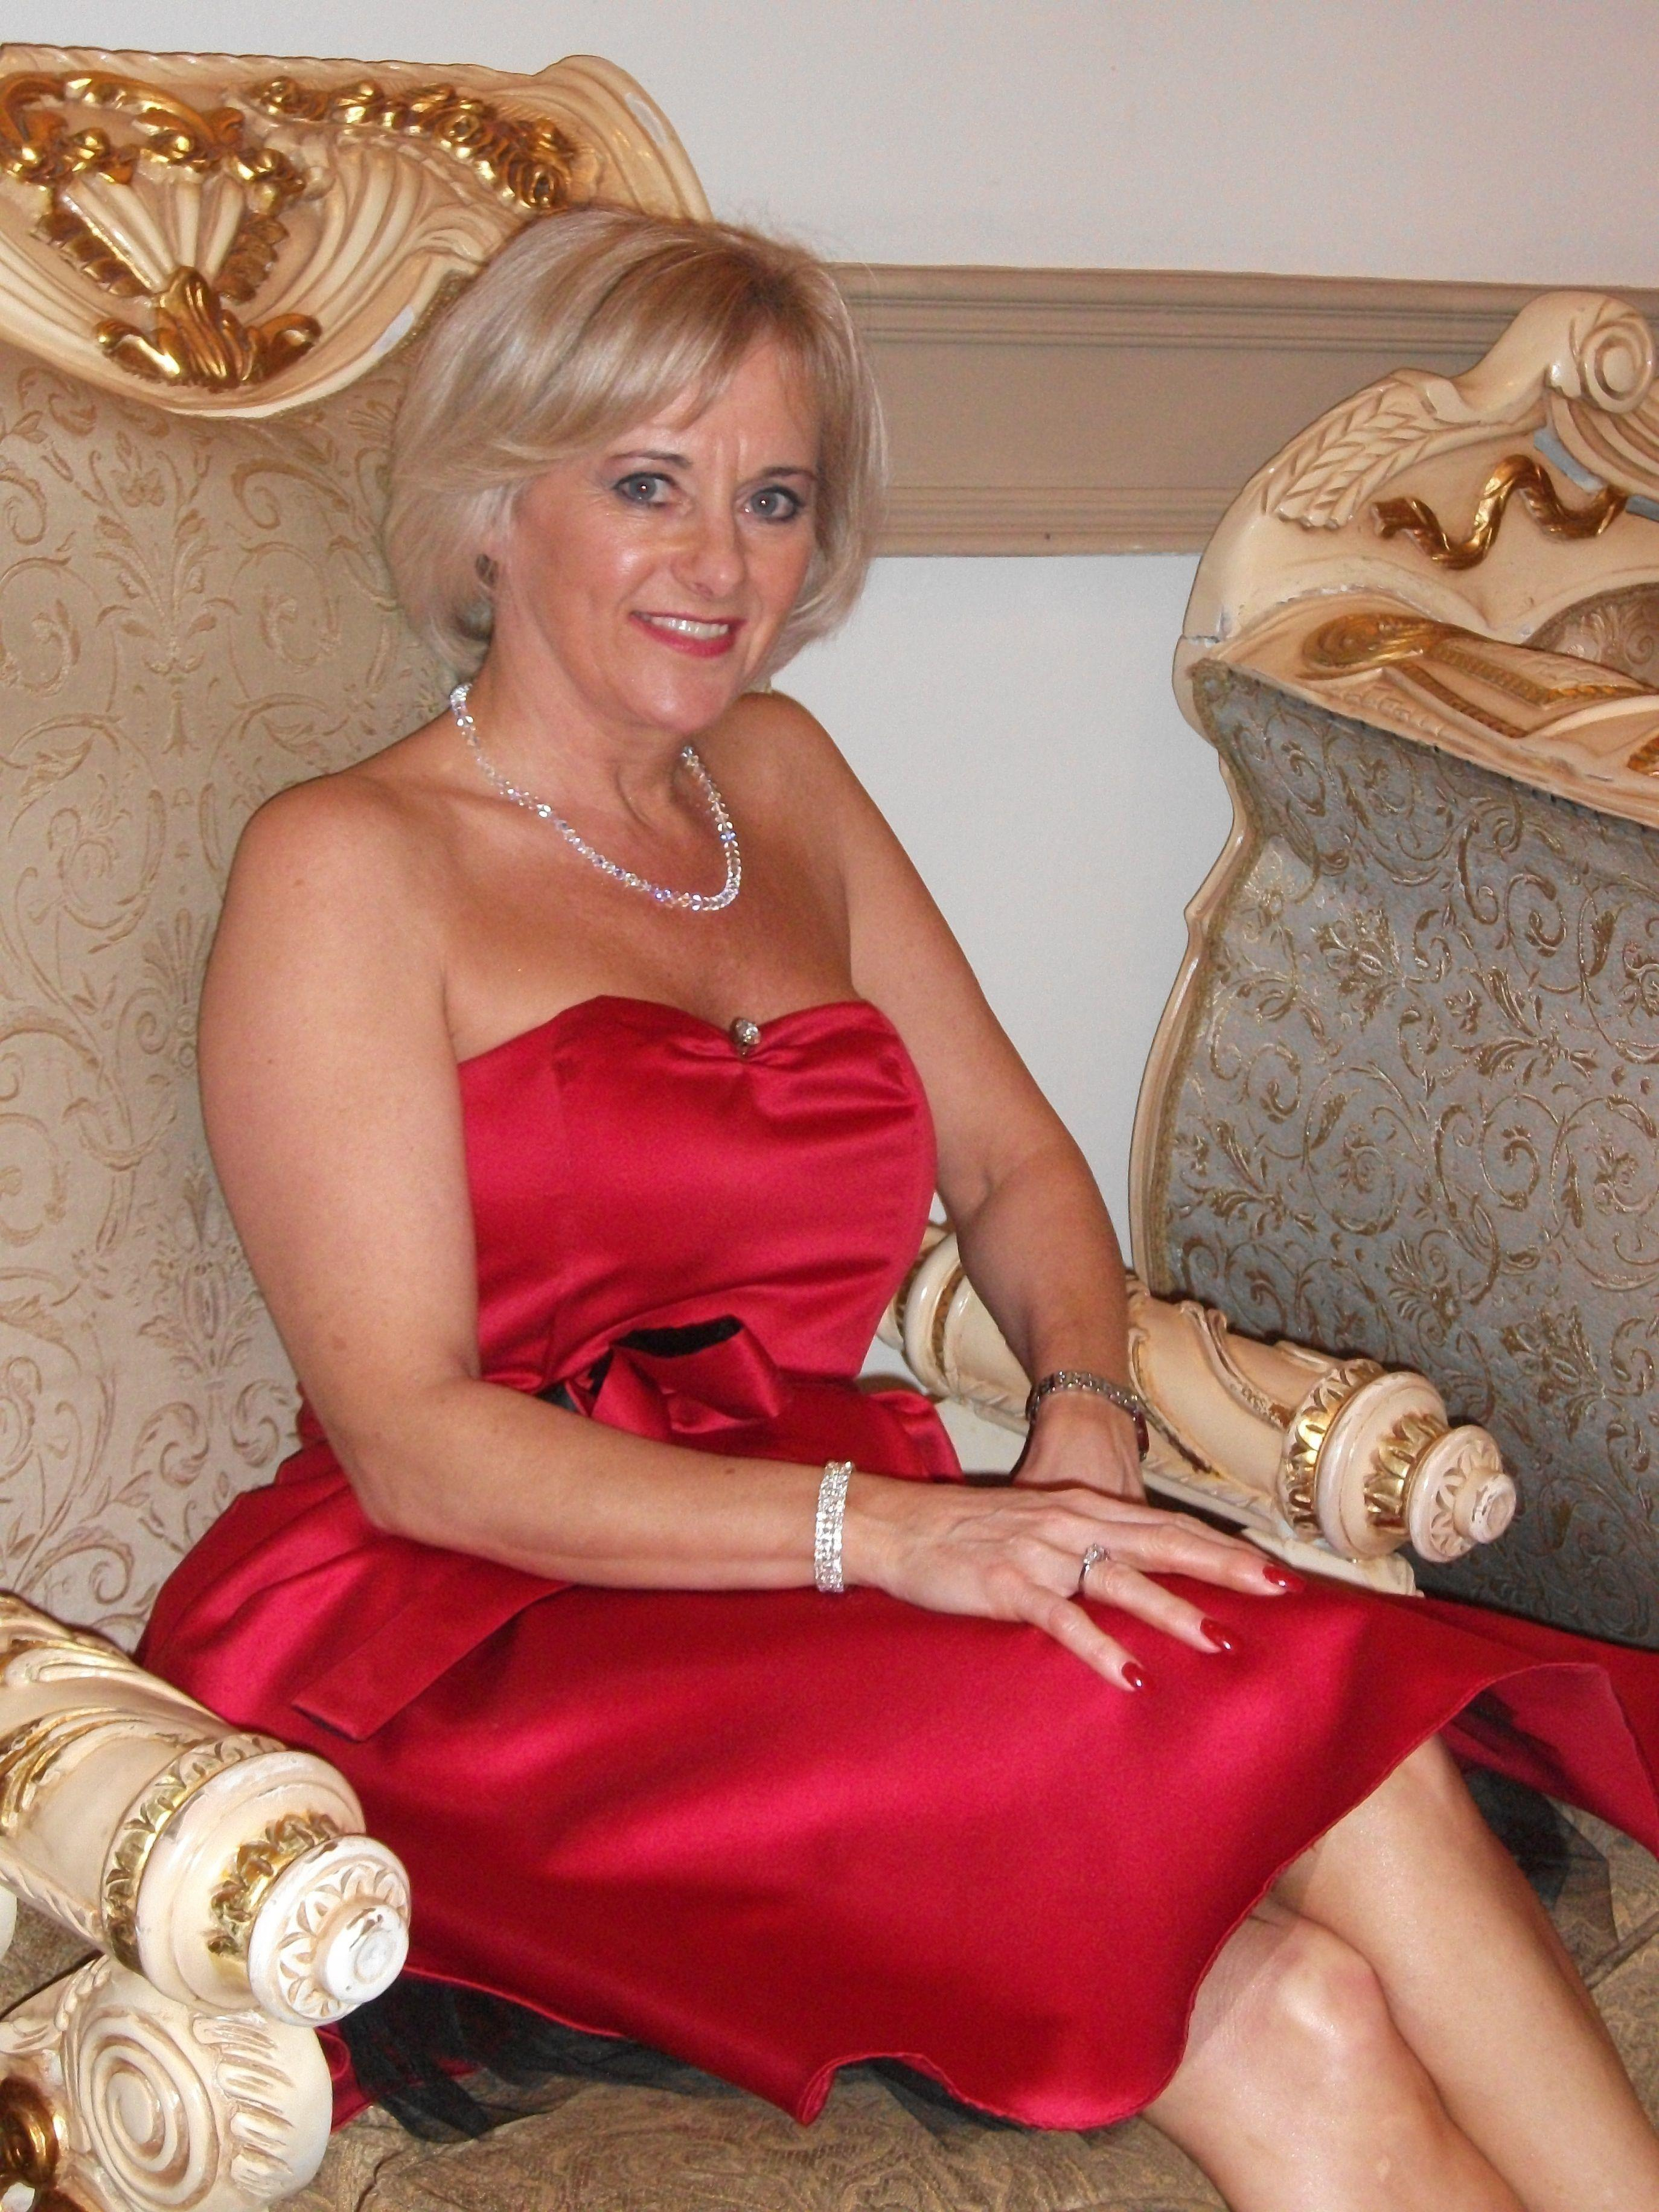 oakville personals Online personals with photos of single men and women seeking each other for dating, love, and marriage in oakville.